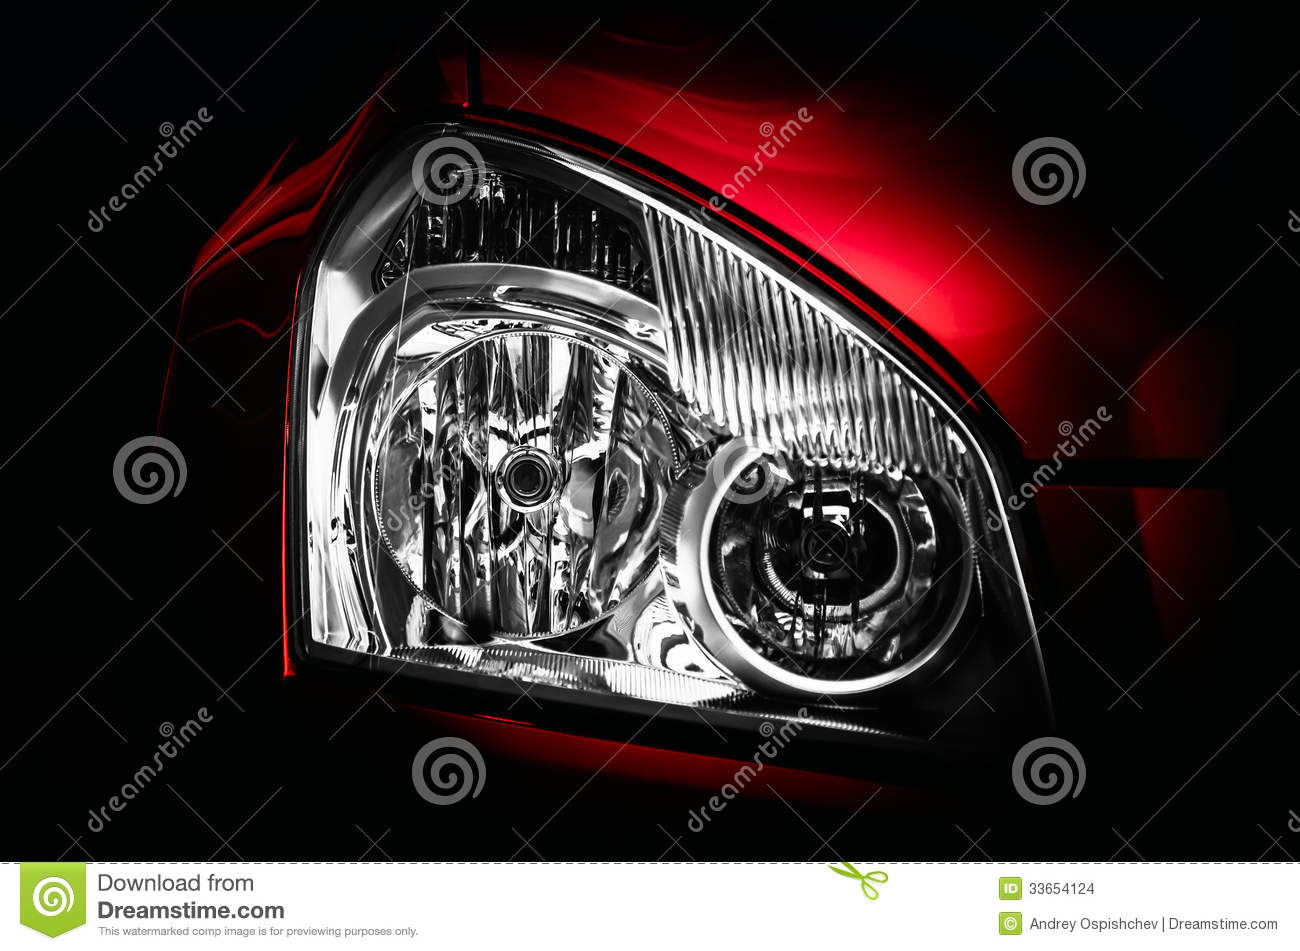 Headlight cleaning business plan - How to Start a Cleaning Business